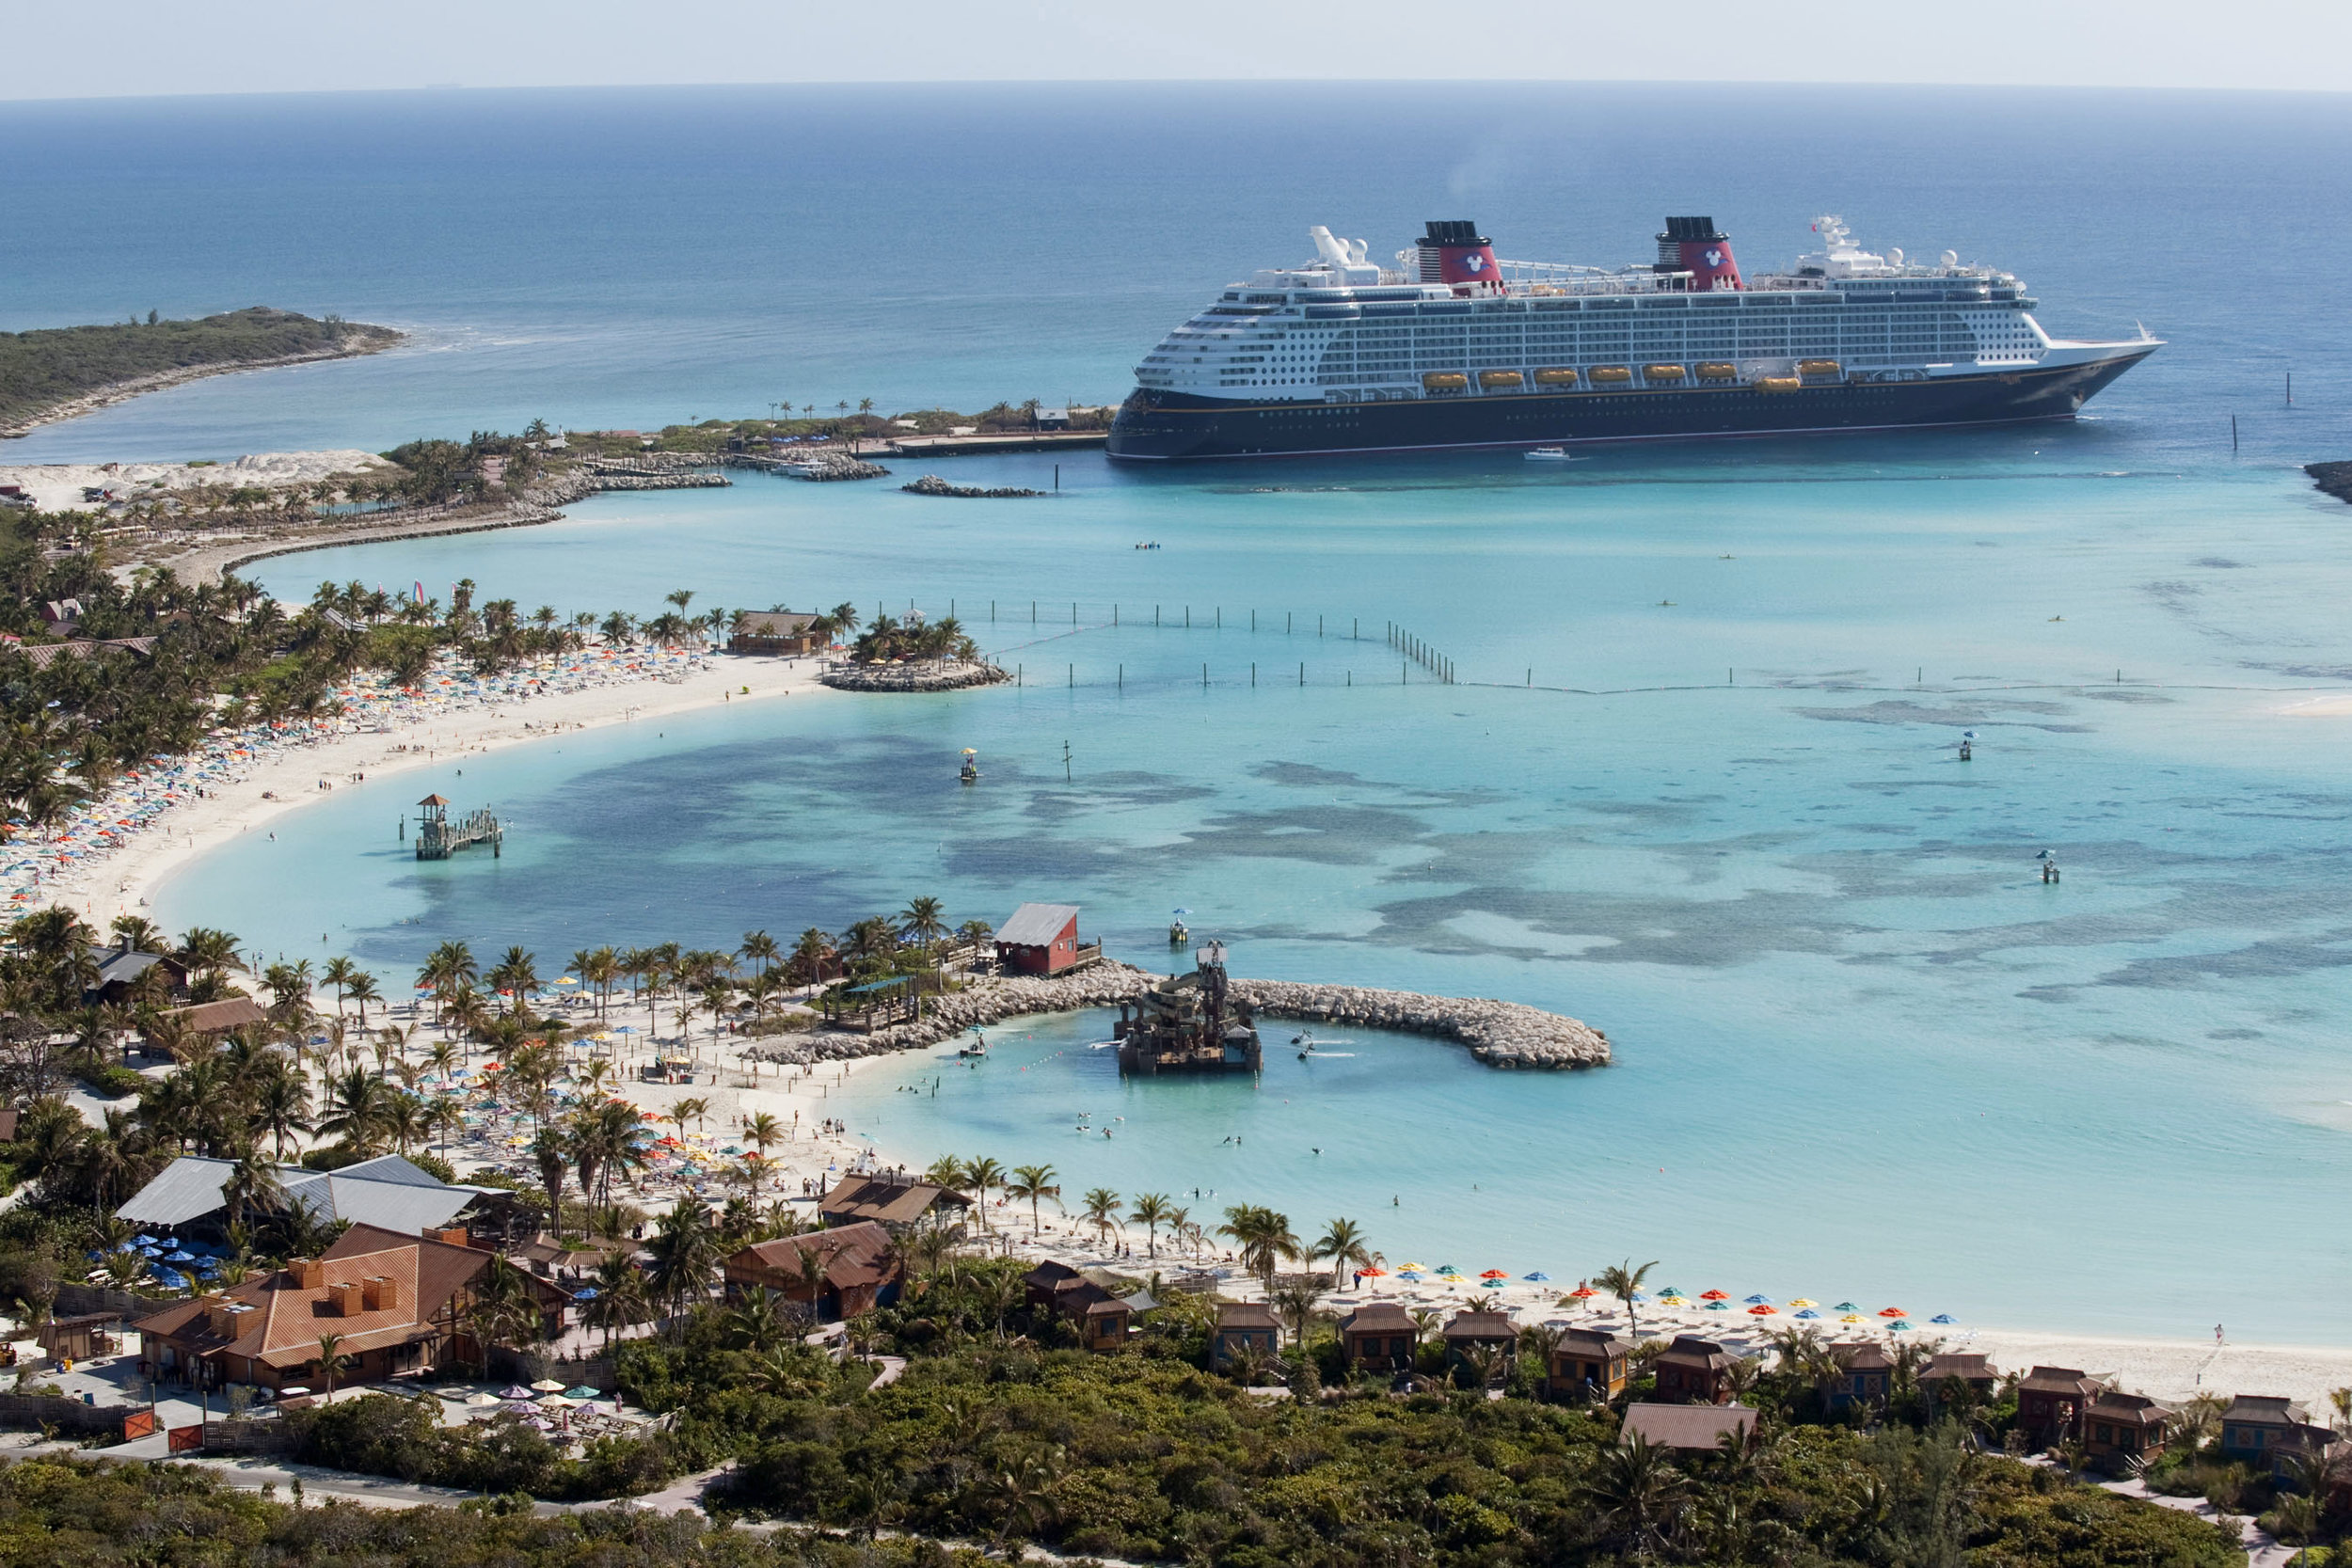 Disney's private island, Castaway Cay in the Bahamas